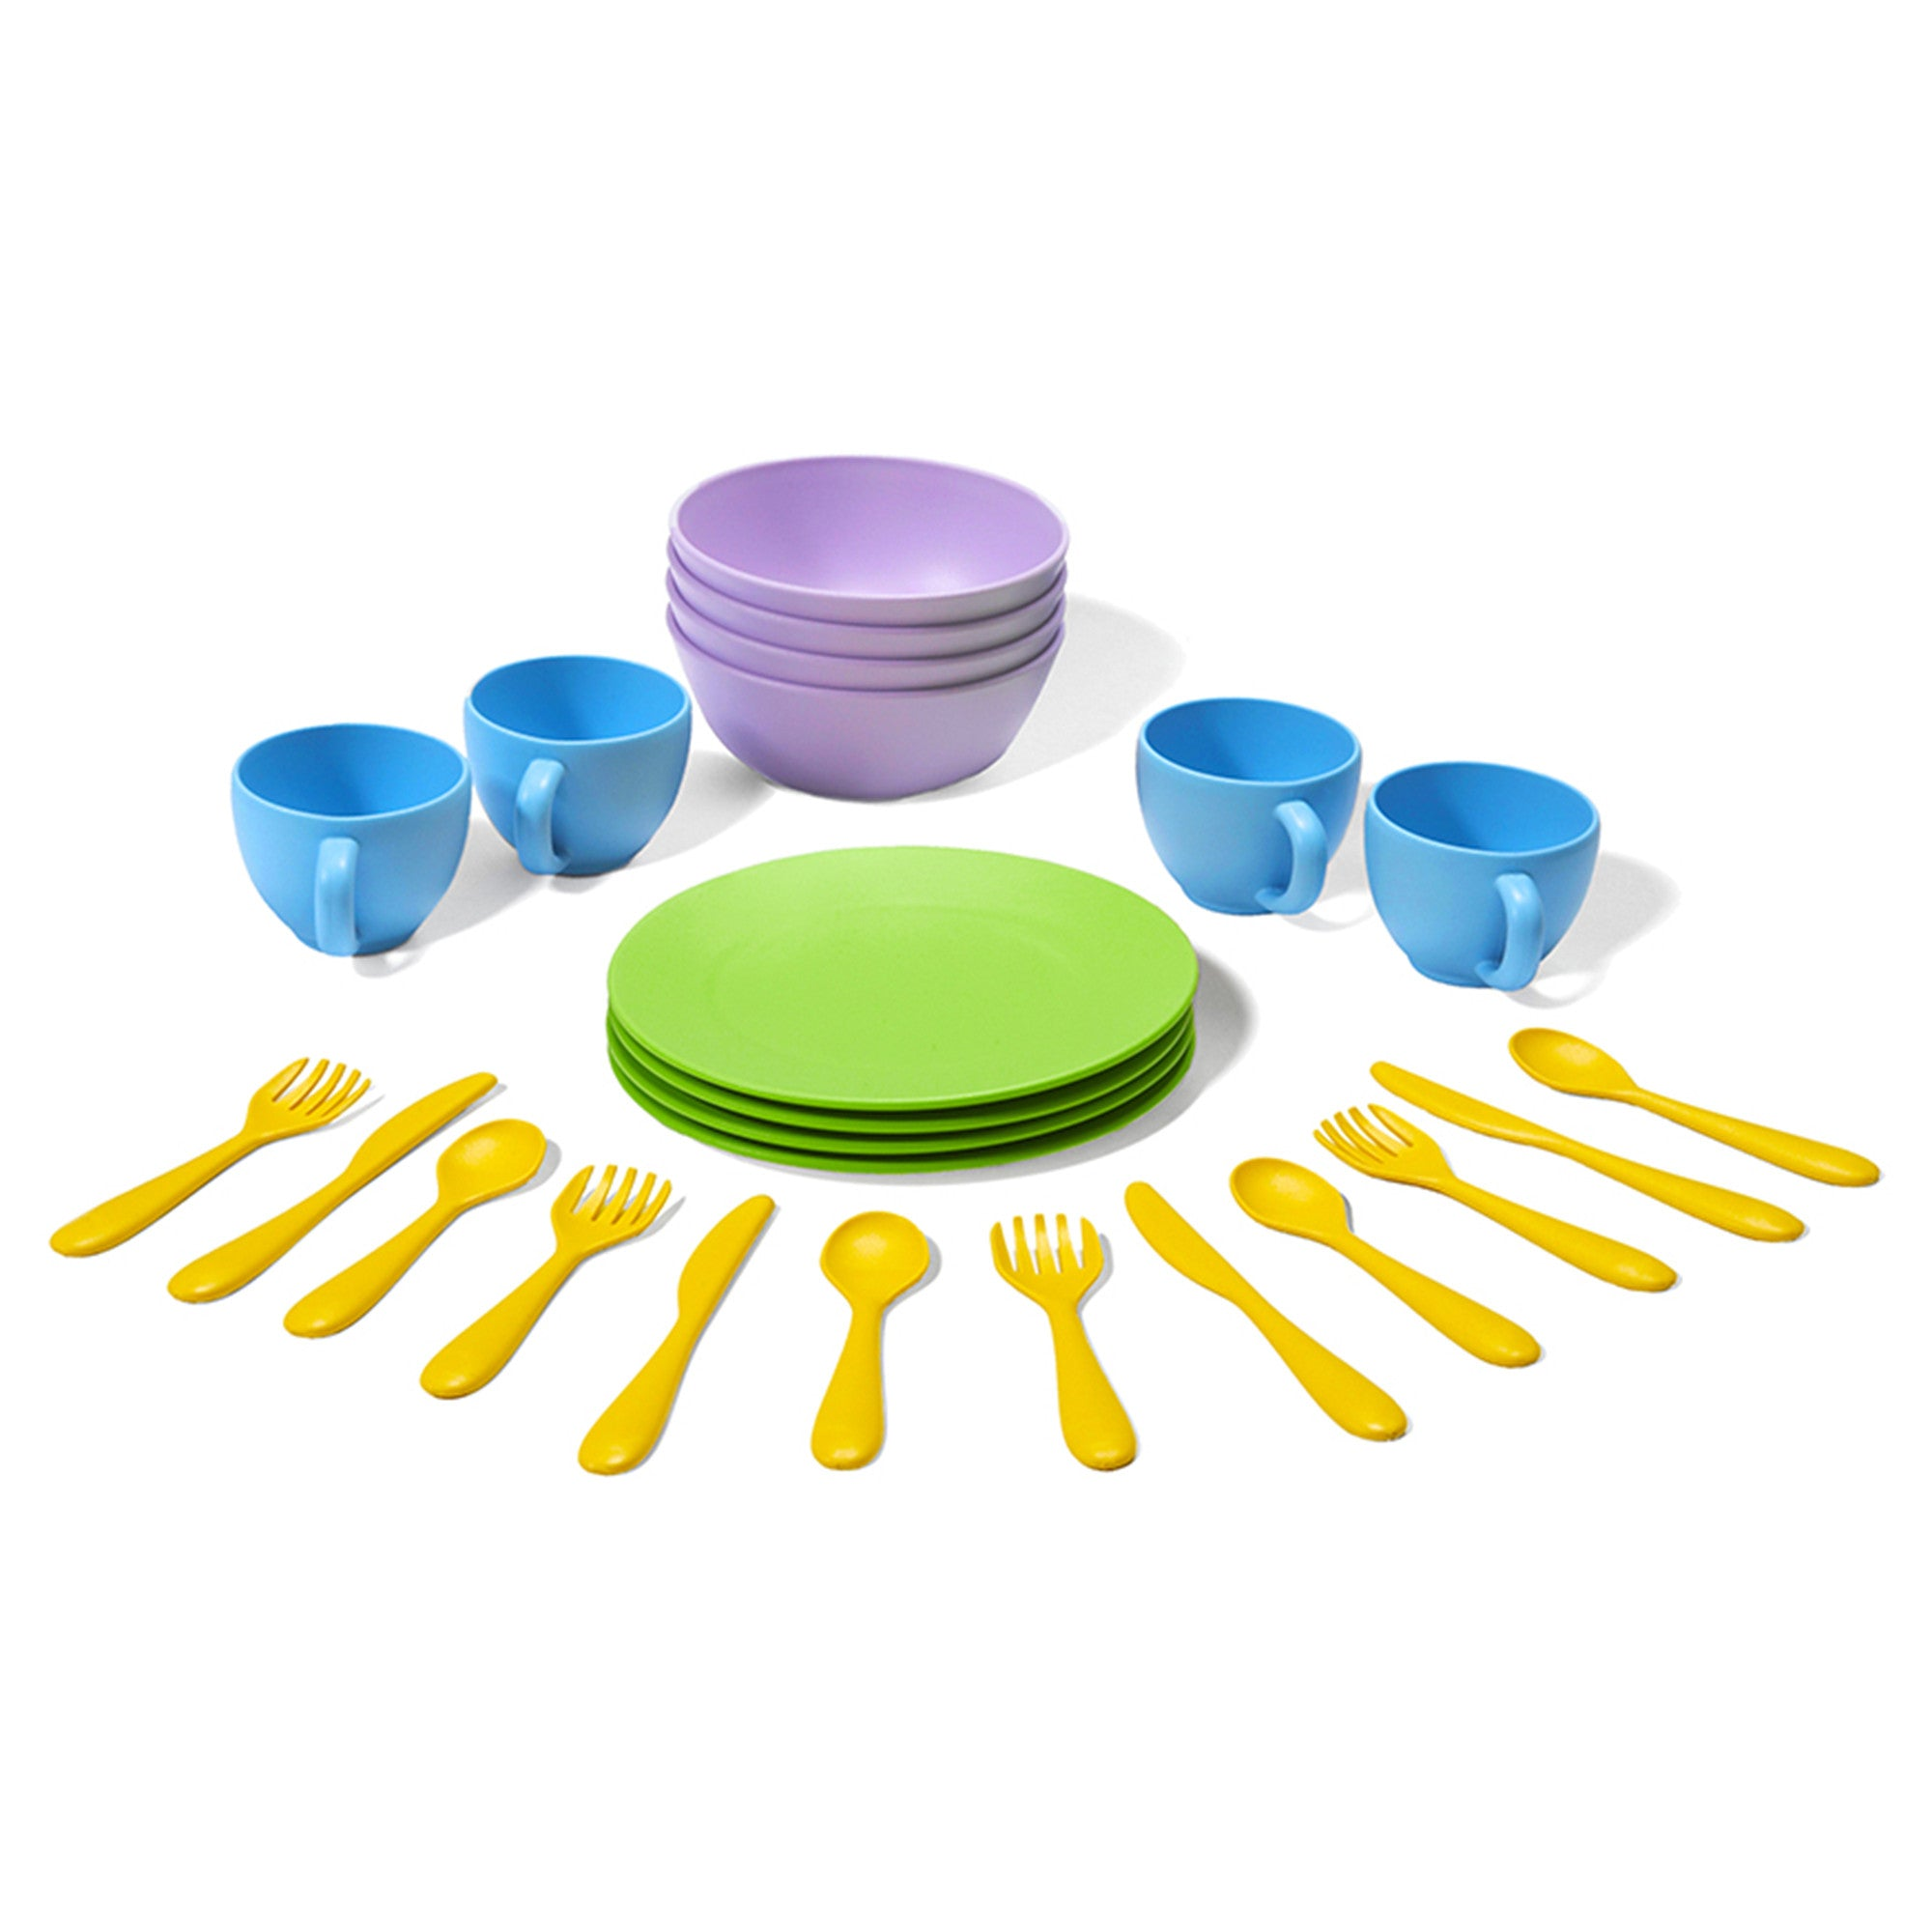 Green Toys Dish Set   - Green Toys - Little Earth Nest